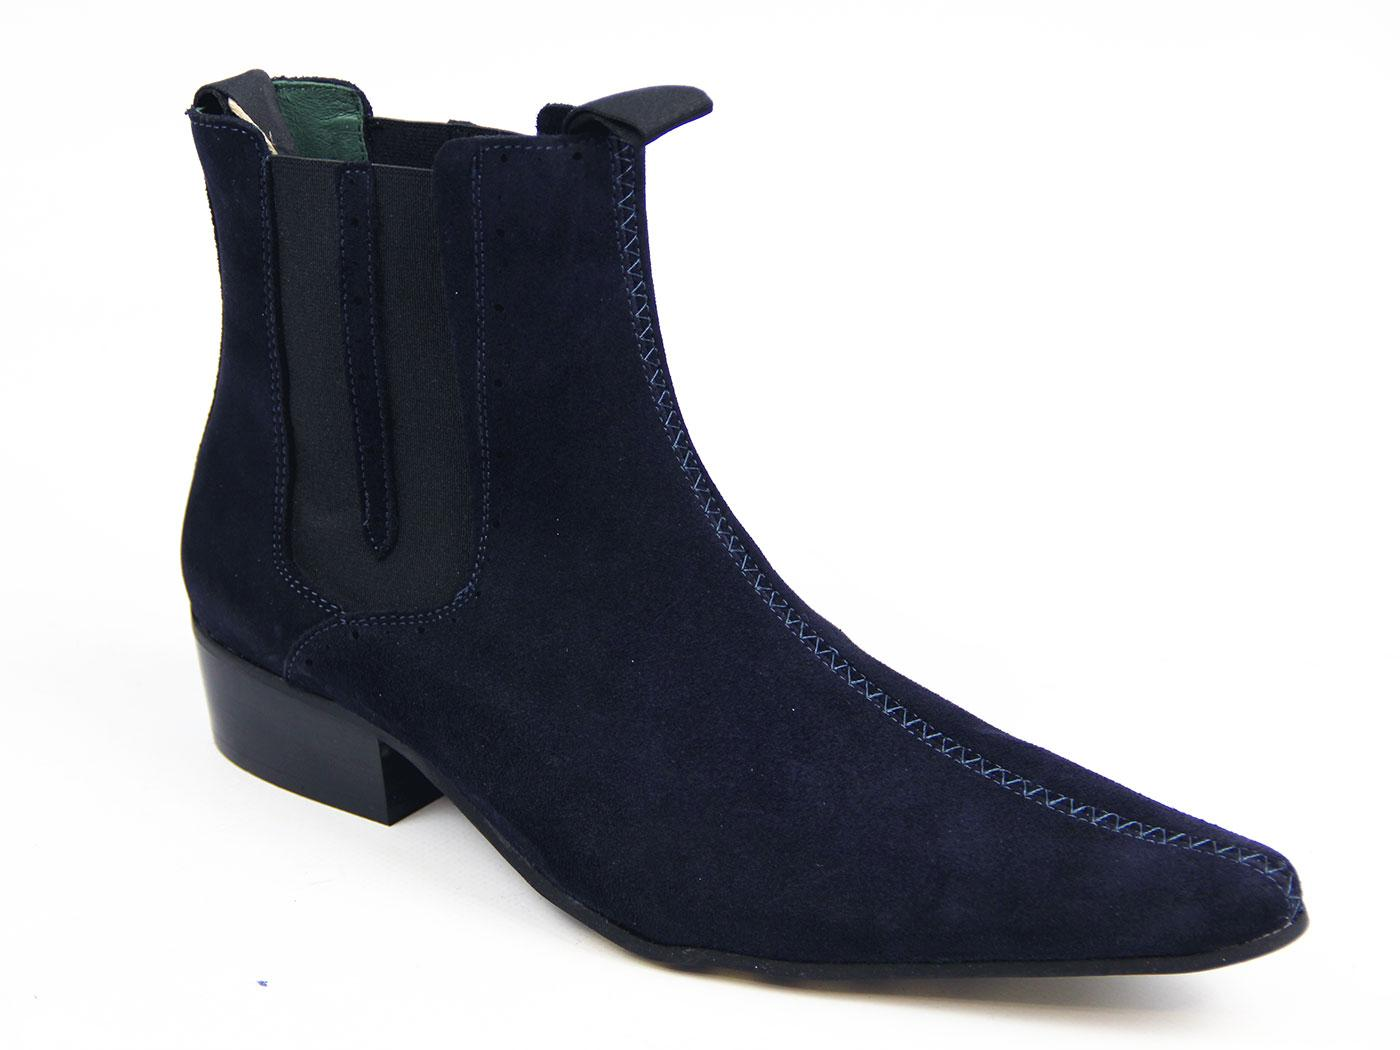 Up Beat DELICIOUS JUNCTION Brogue Chelsea Boots NS